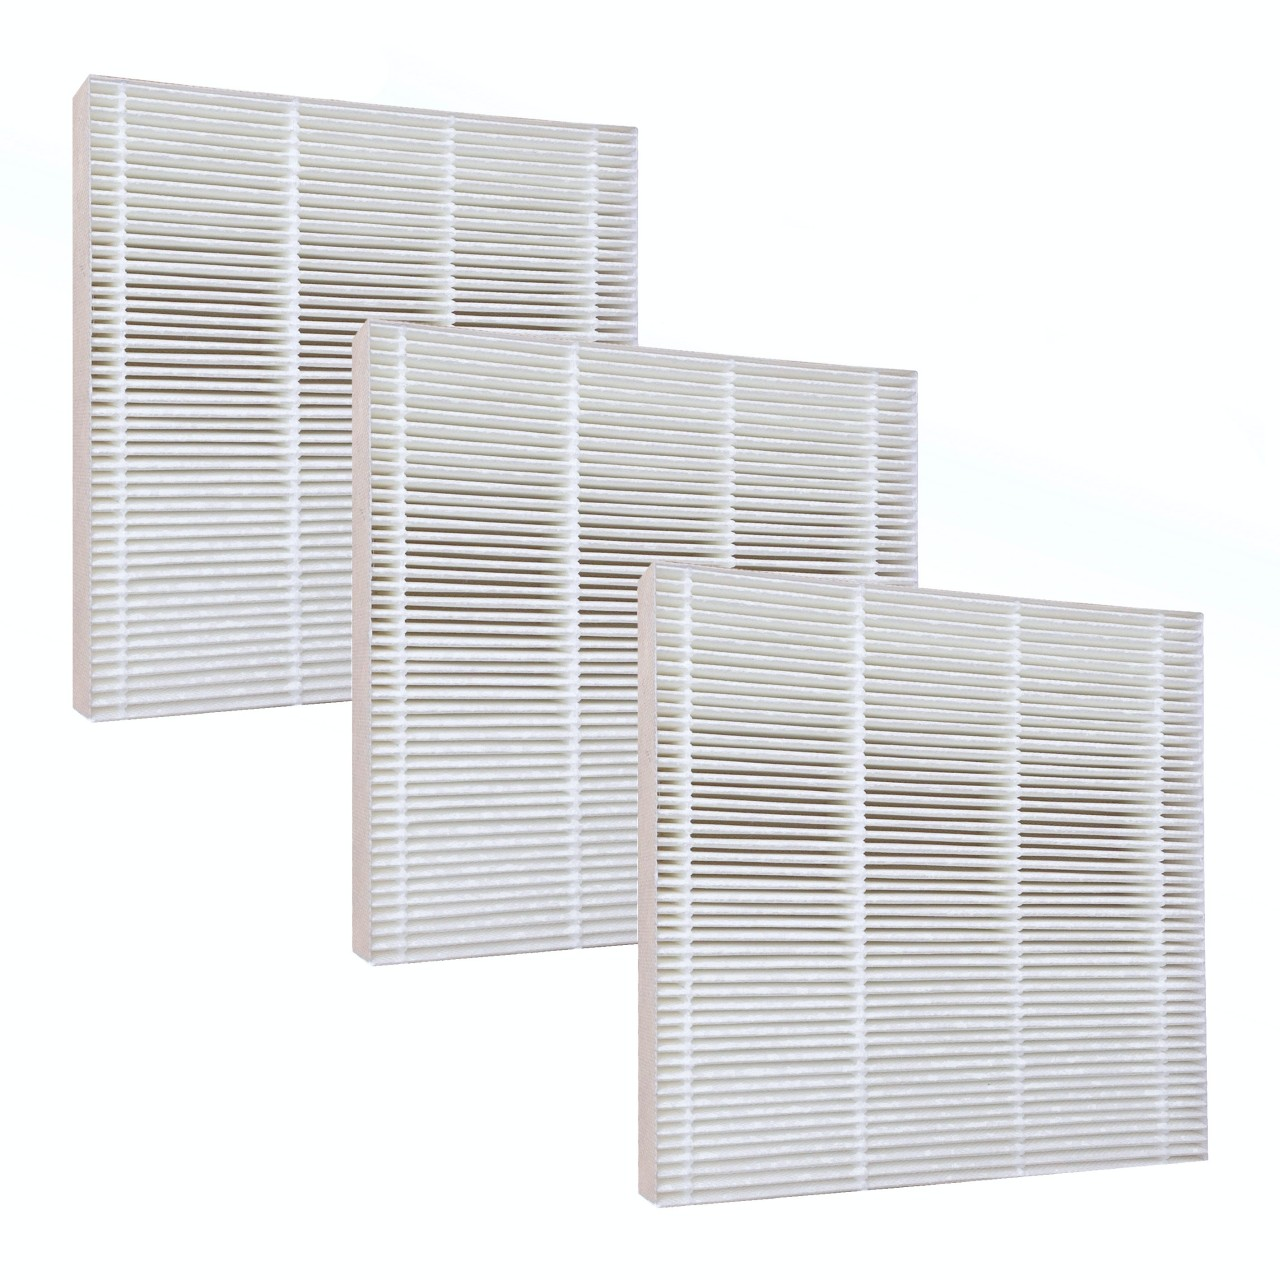 3 hepa filters for fresh air by ecoquest air purifier